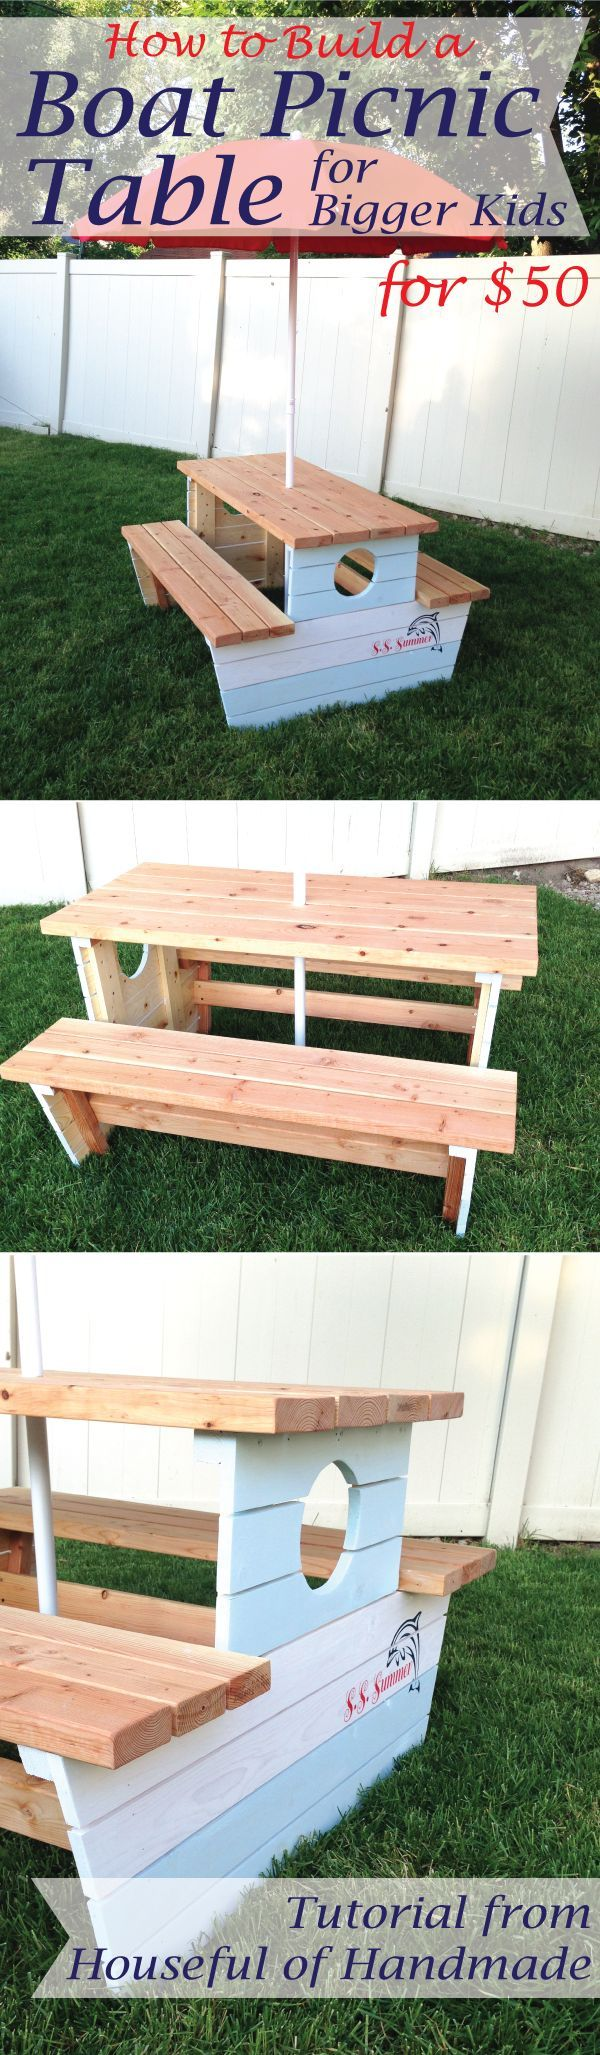 17 best ideas about kids picnic table on pinterest for Picnic boat plans